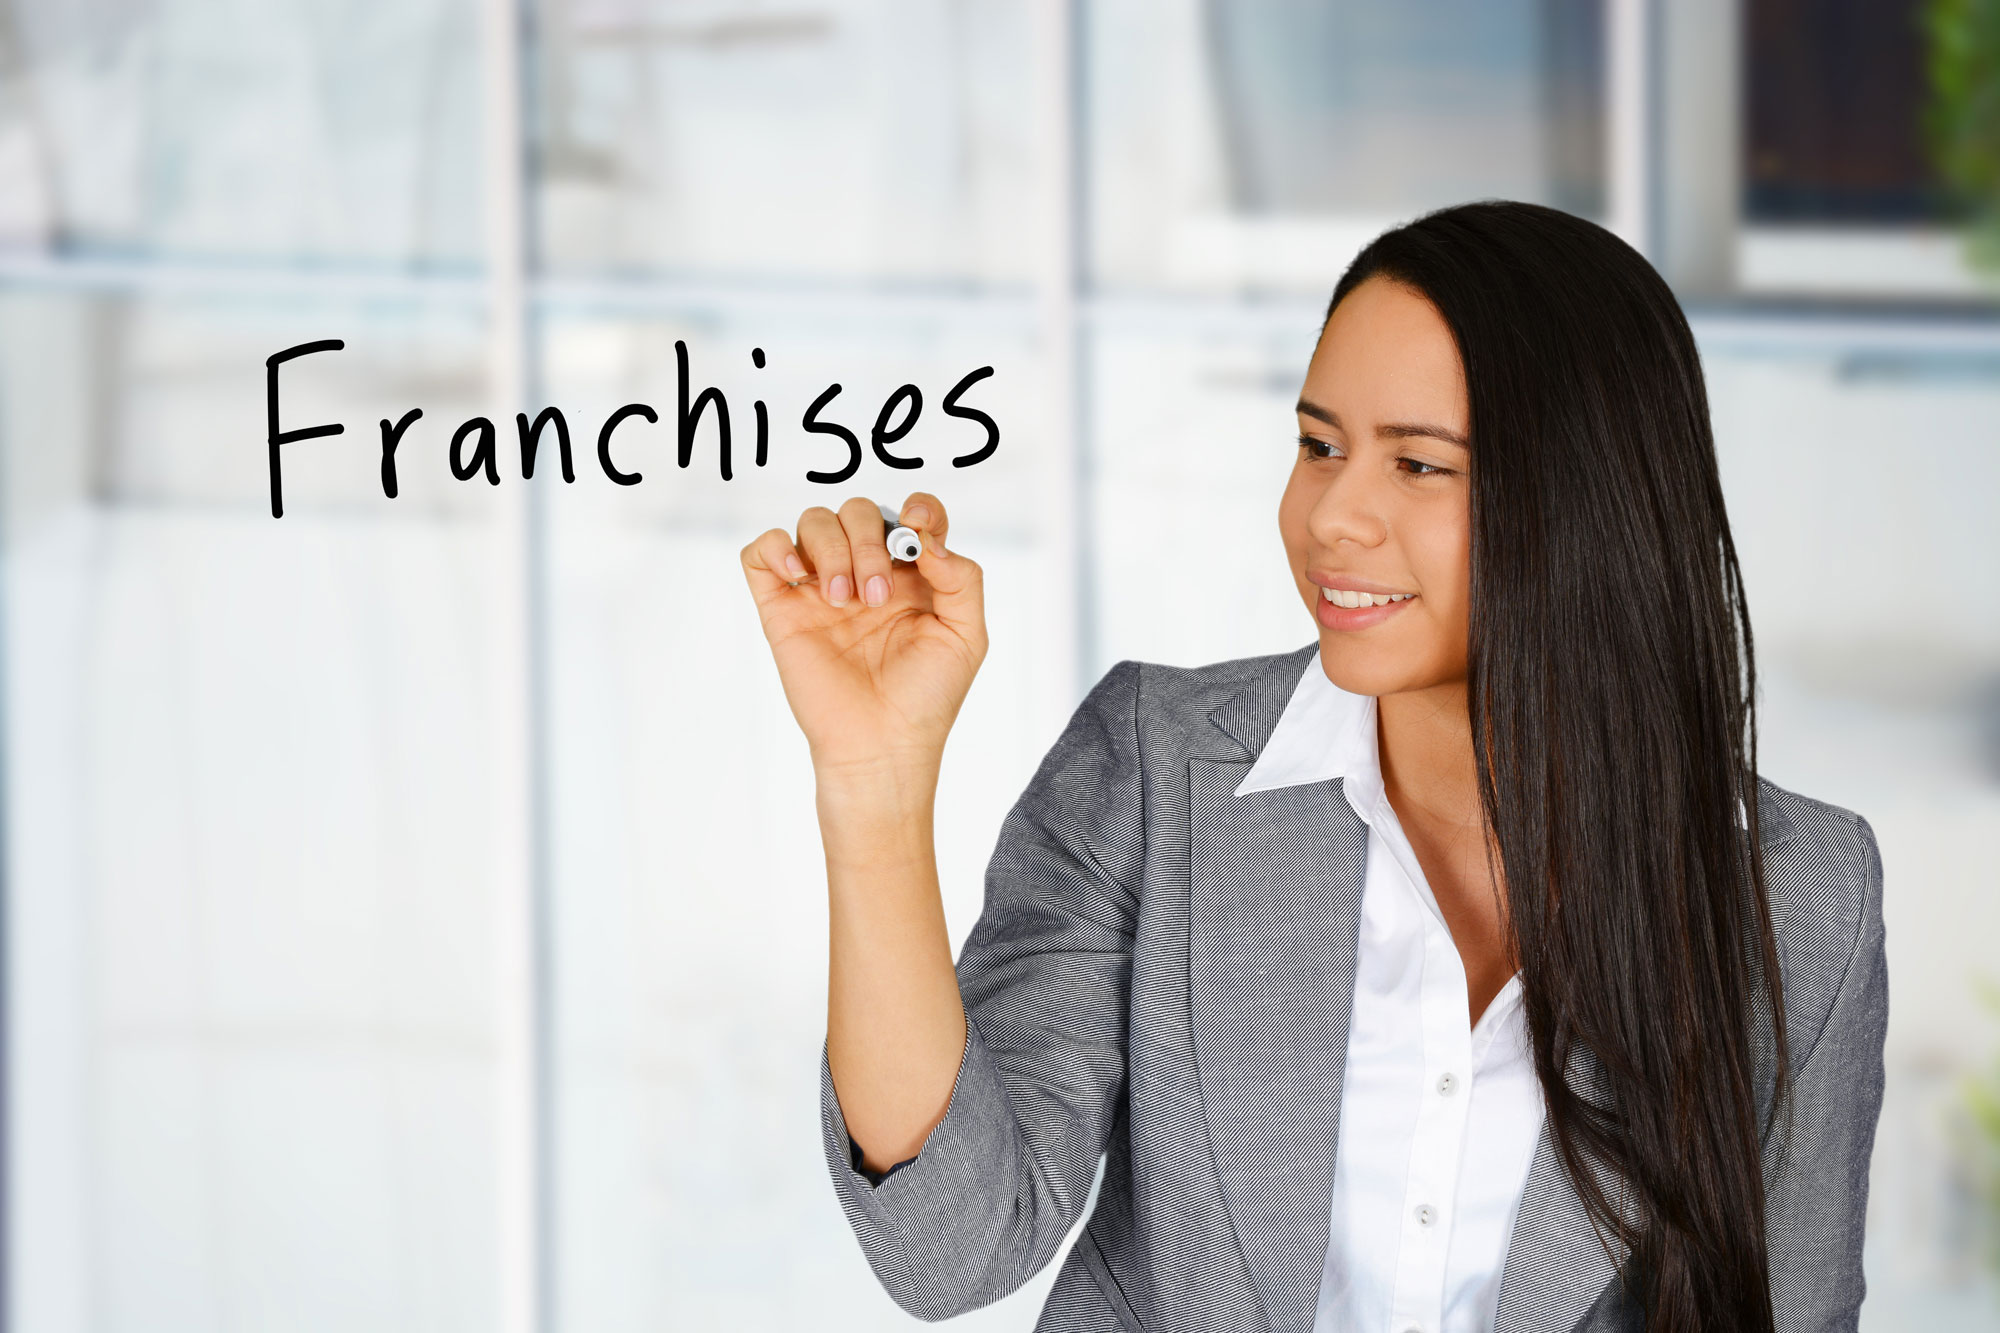 Why Are Franchises Good?